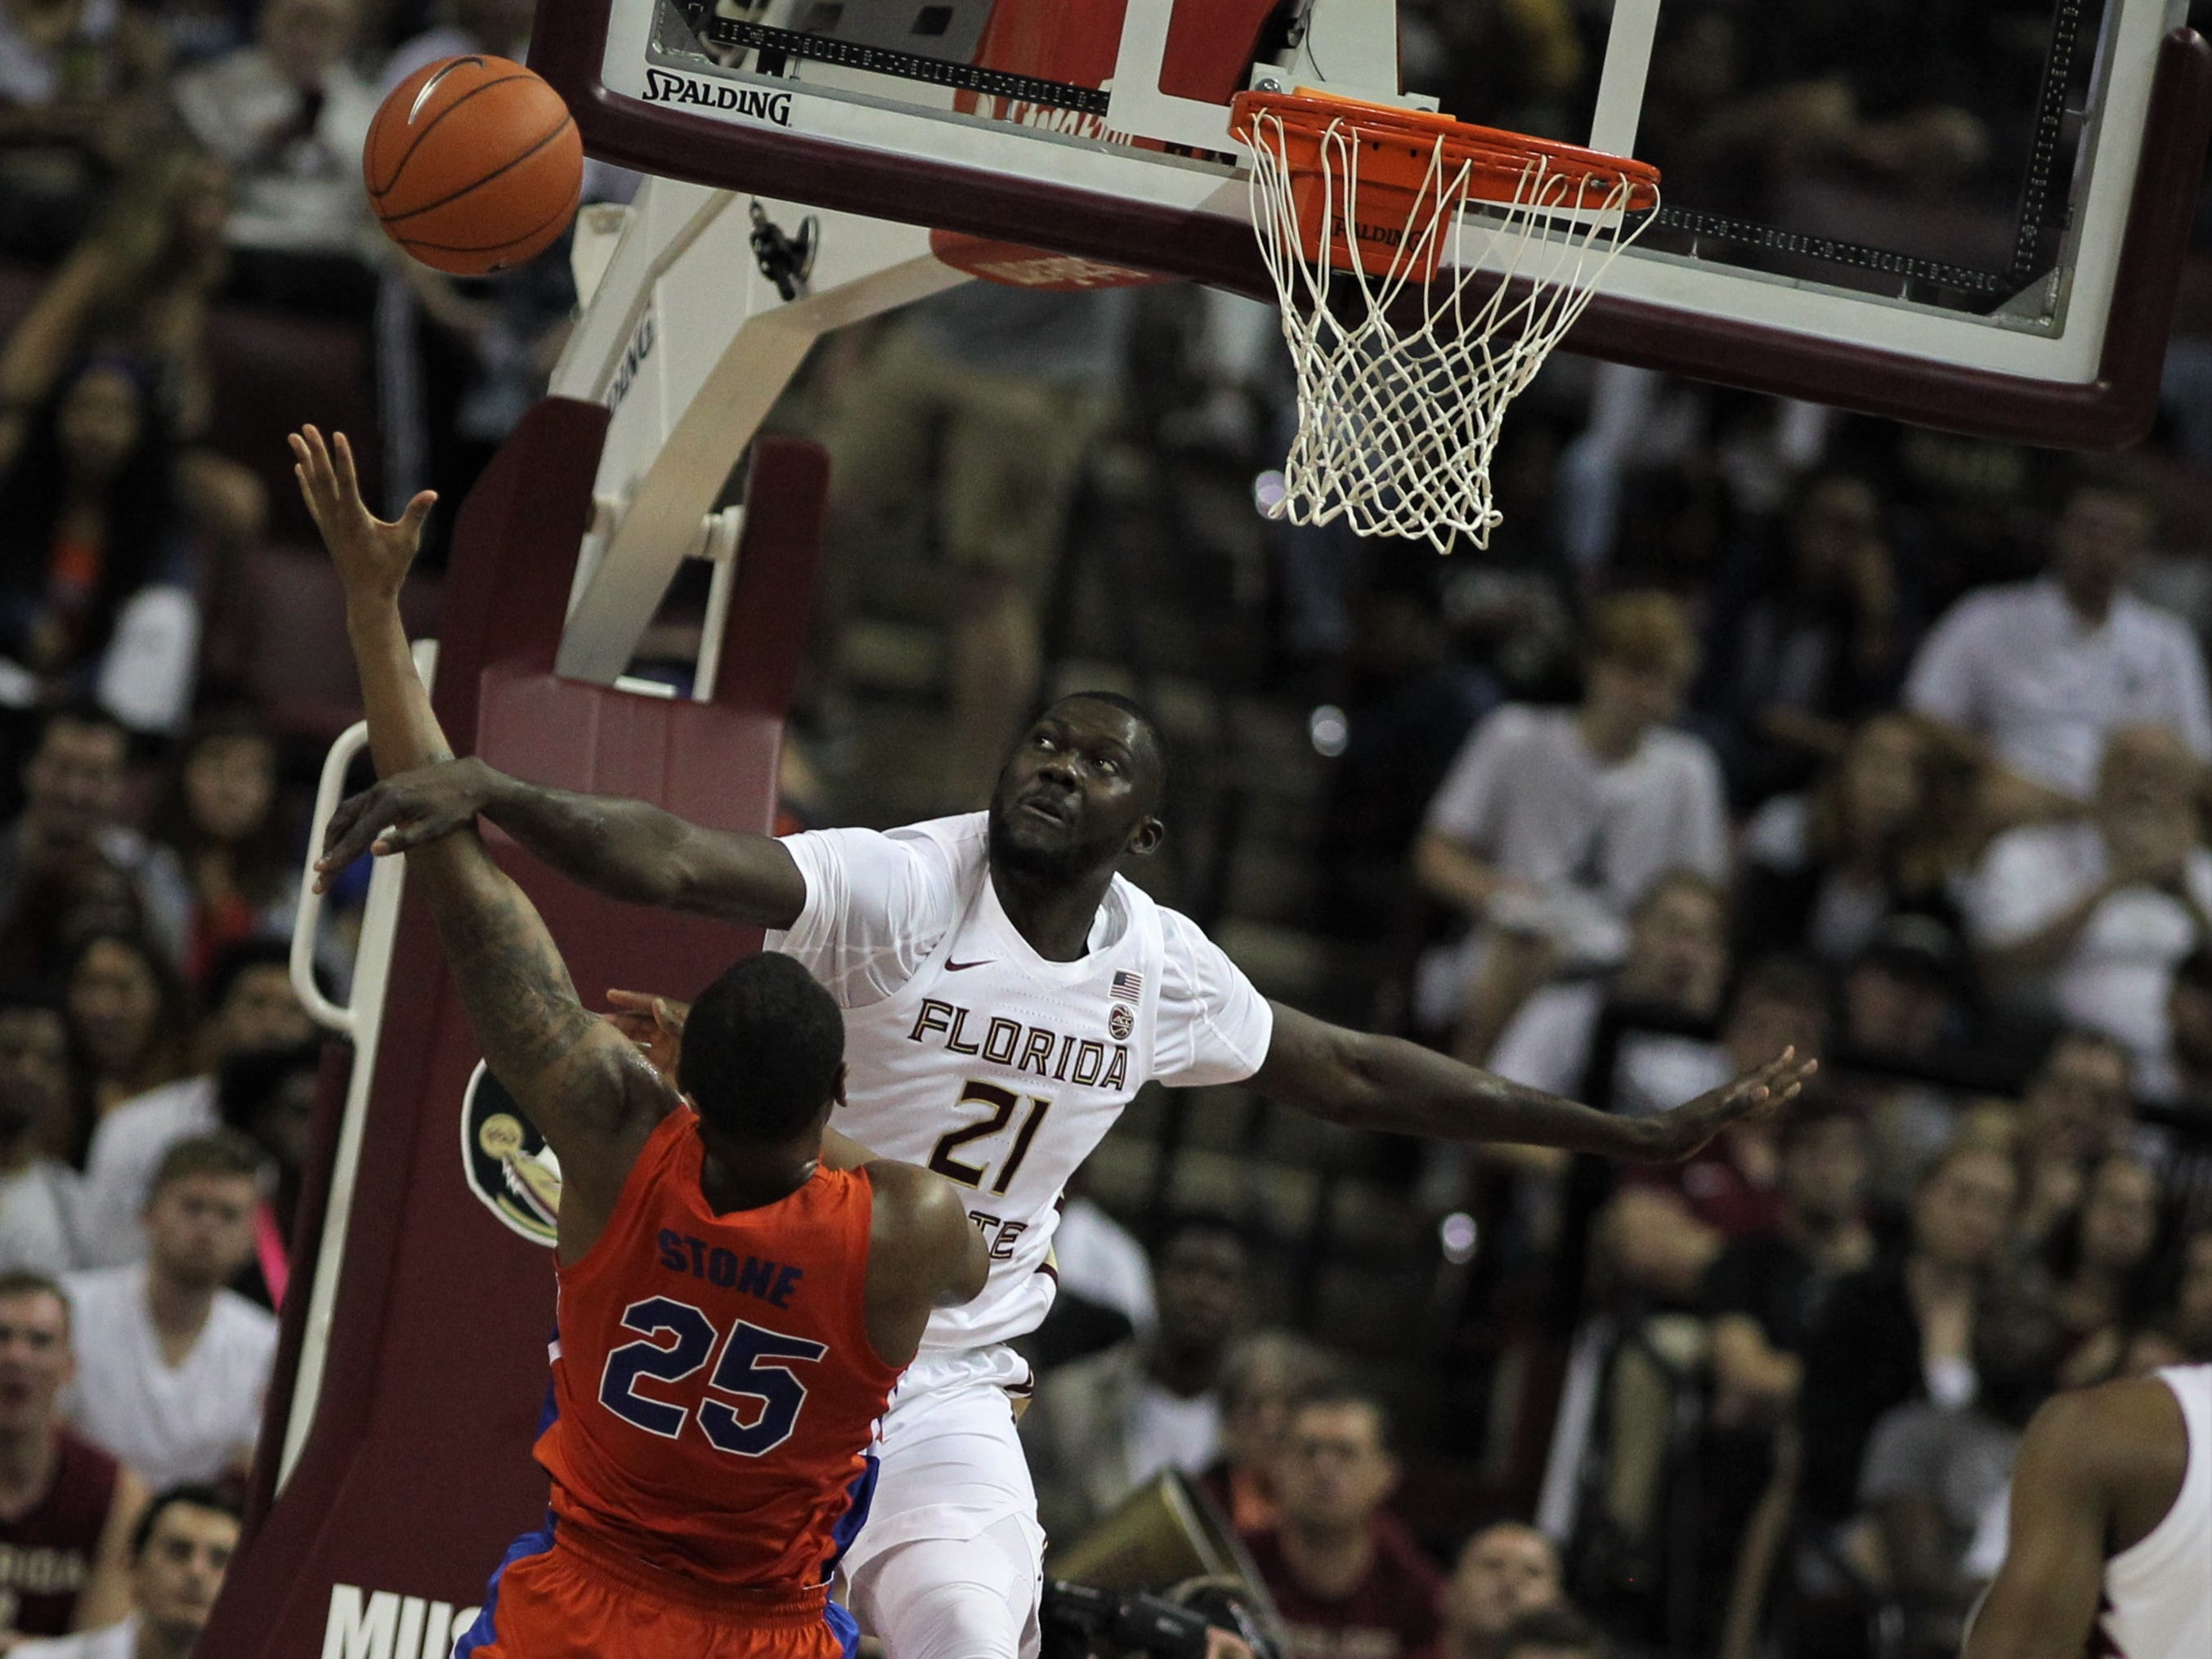 Florida State center Christ Koumadje blocks the shot of Florida's Isaiah Stokes during the Sunshine Showdown game Tuesday at the Tucker Civic Center.